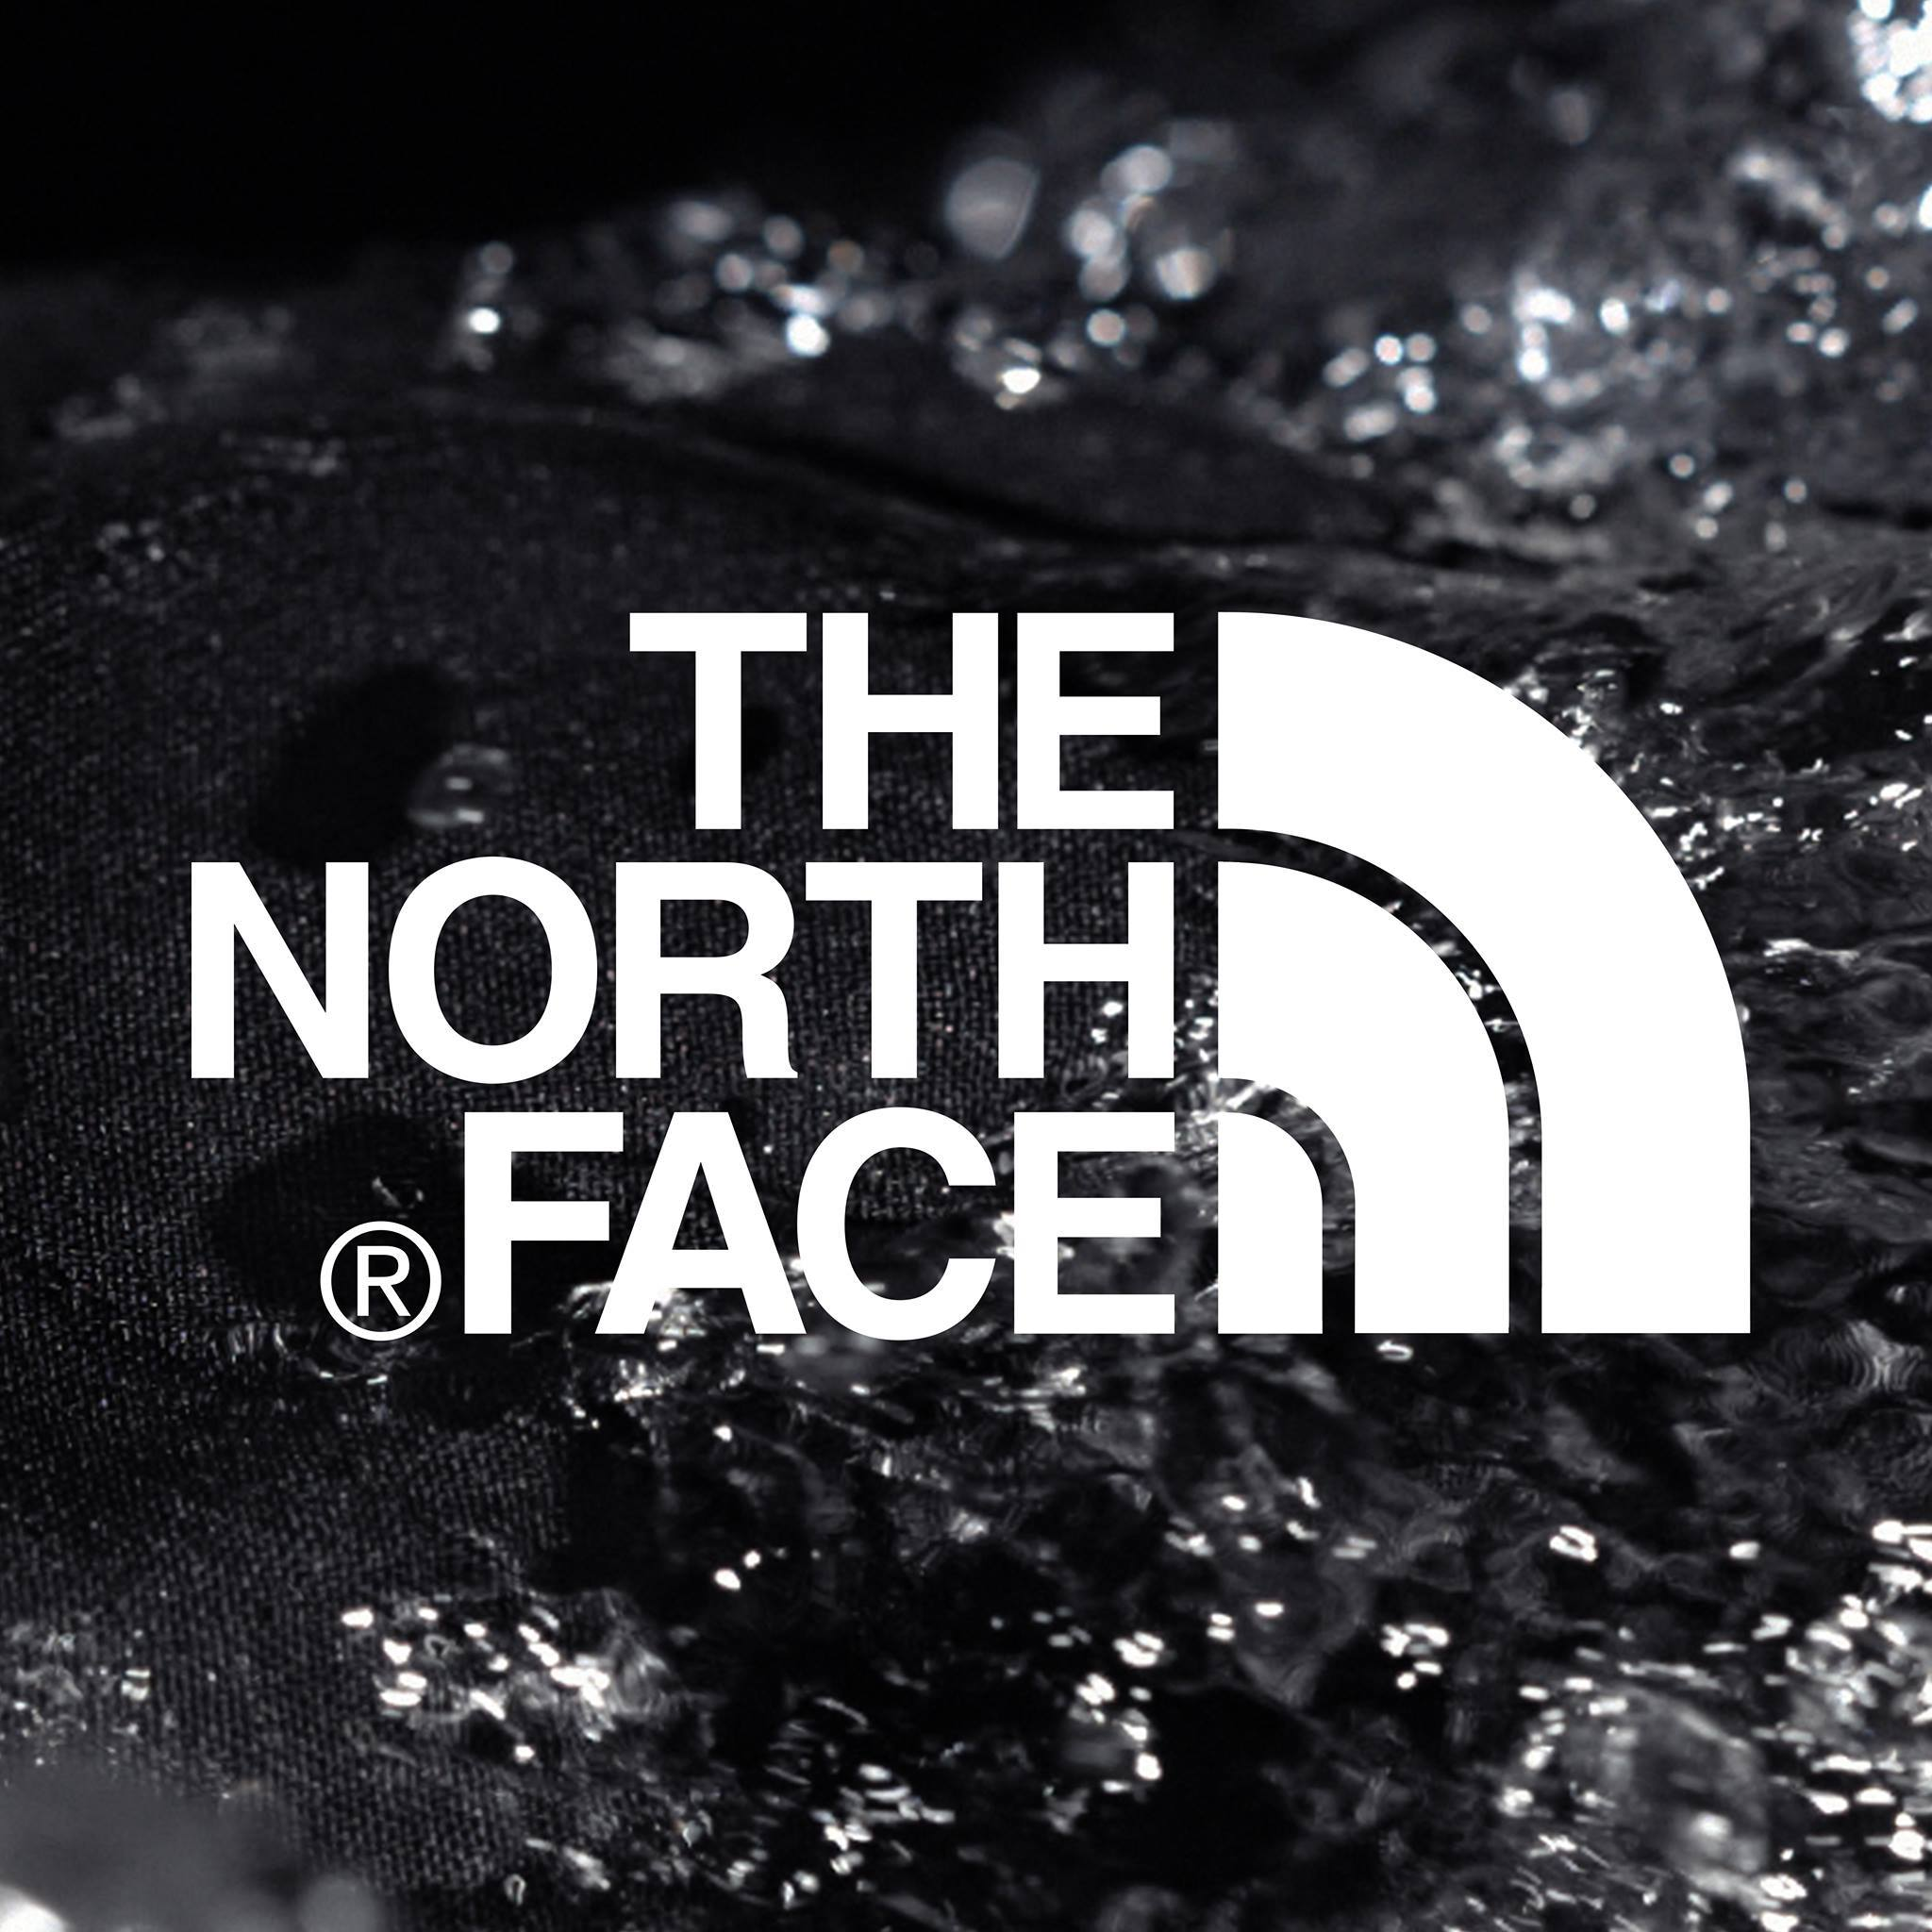 The North Face discount for healthcare workers